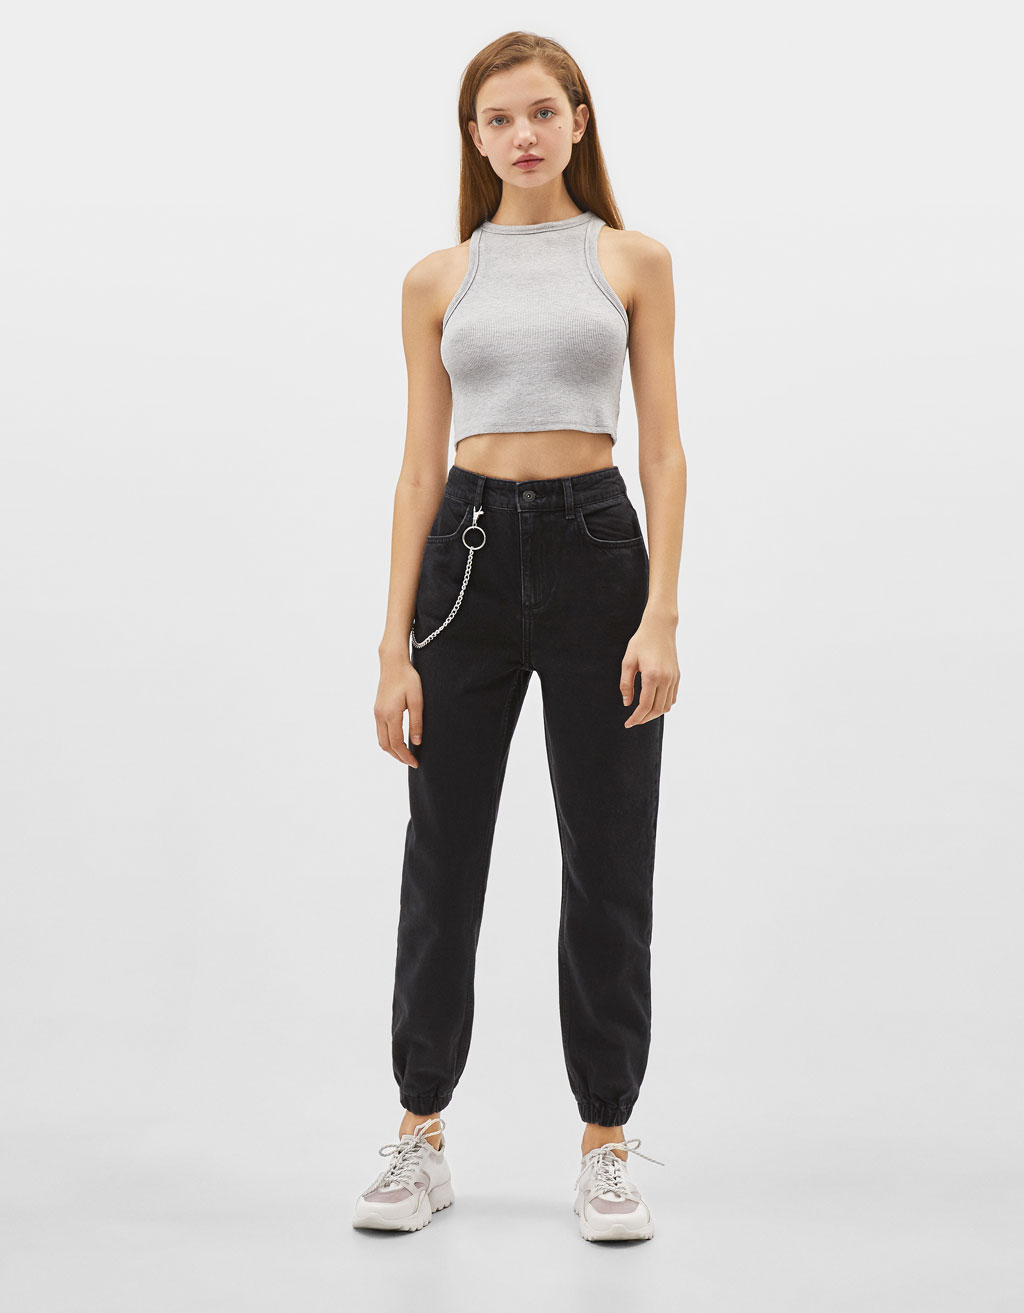 Jeans Jogger High Waist con catena